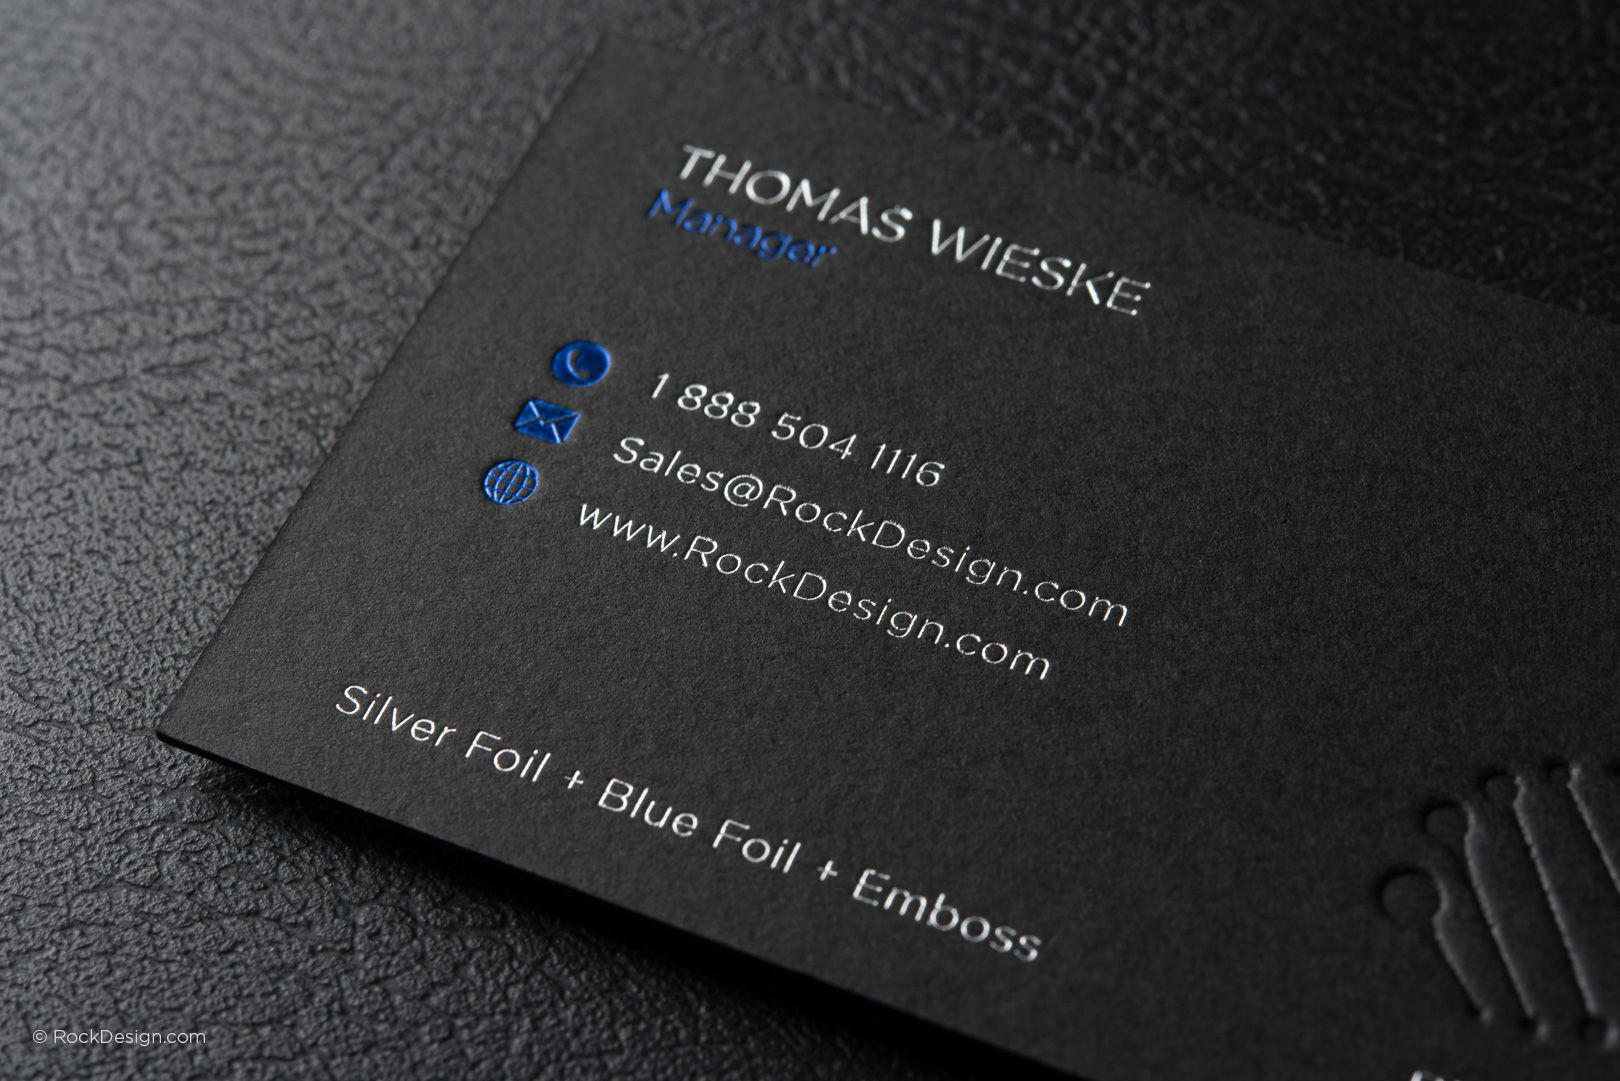 Modern Professional Black Business Card Template With Foil Dna Works Rockdesign Luxury Printing